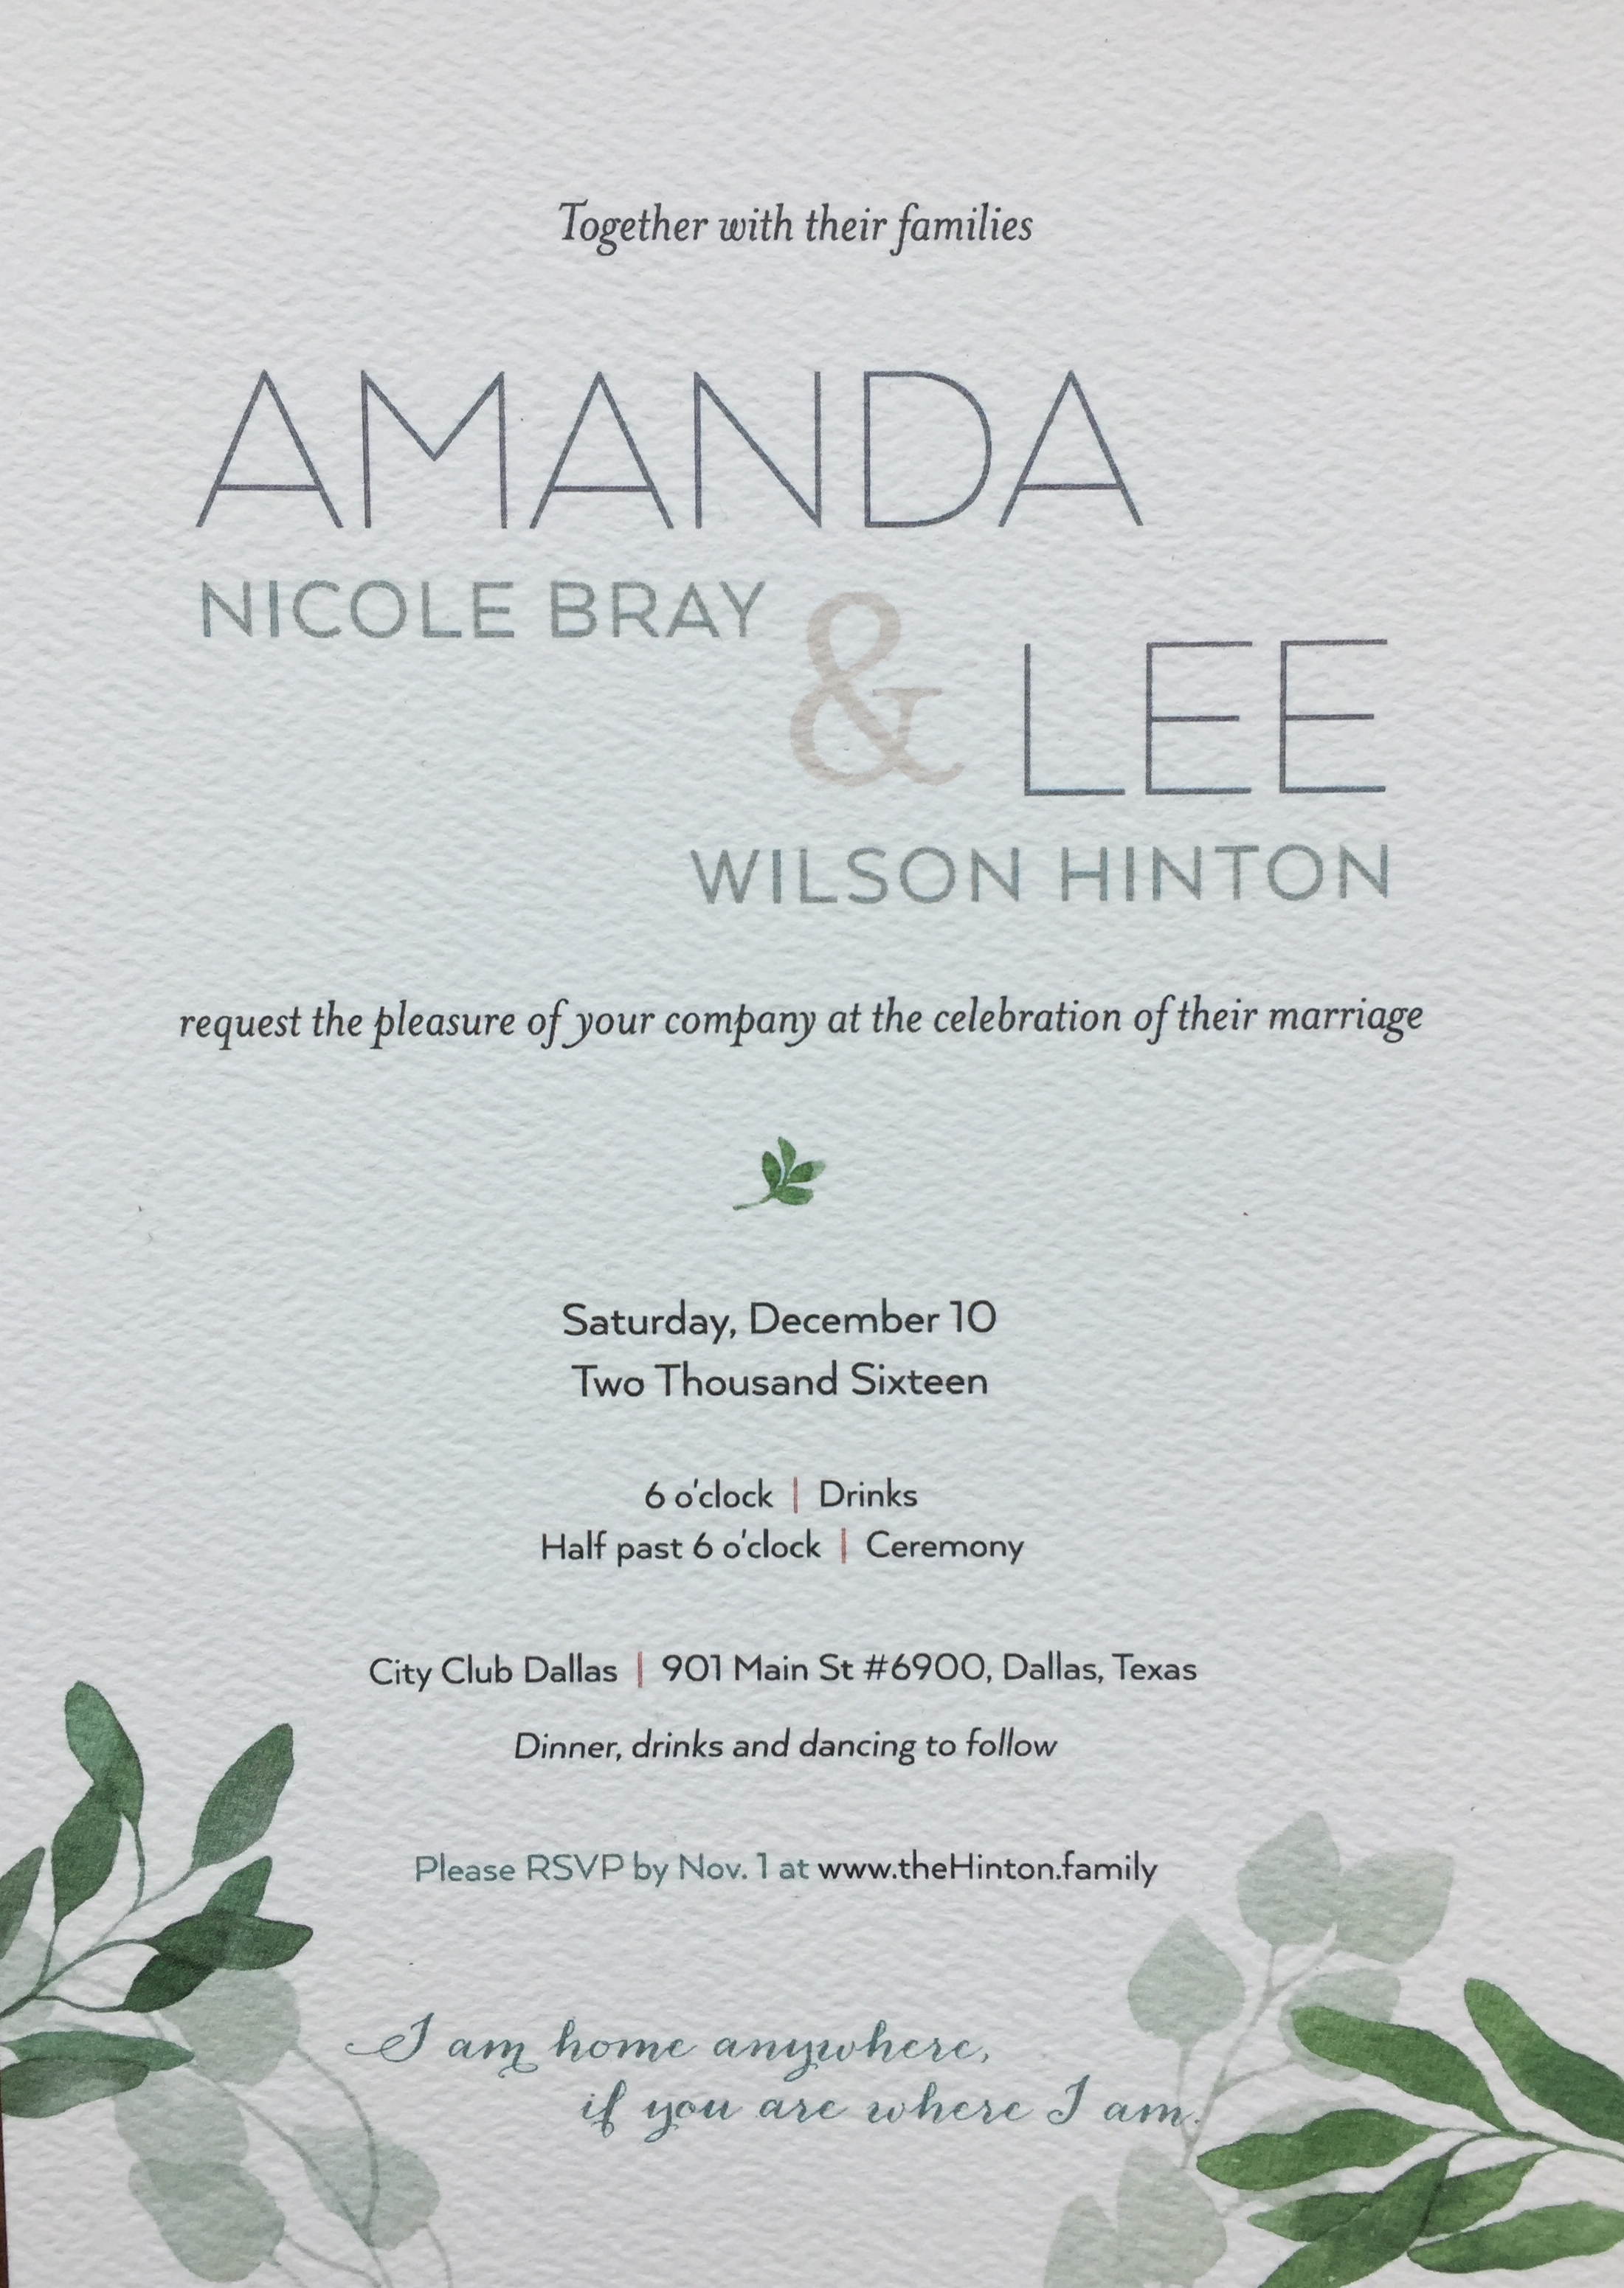 The invitation was simple, one-sided and didn't require extra shipping fees.